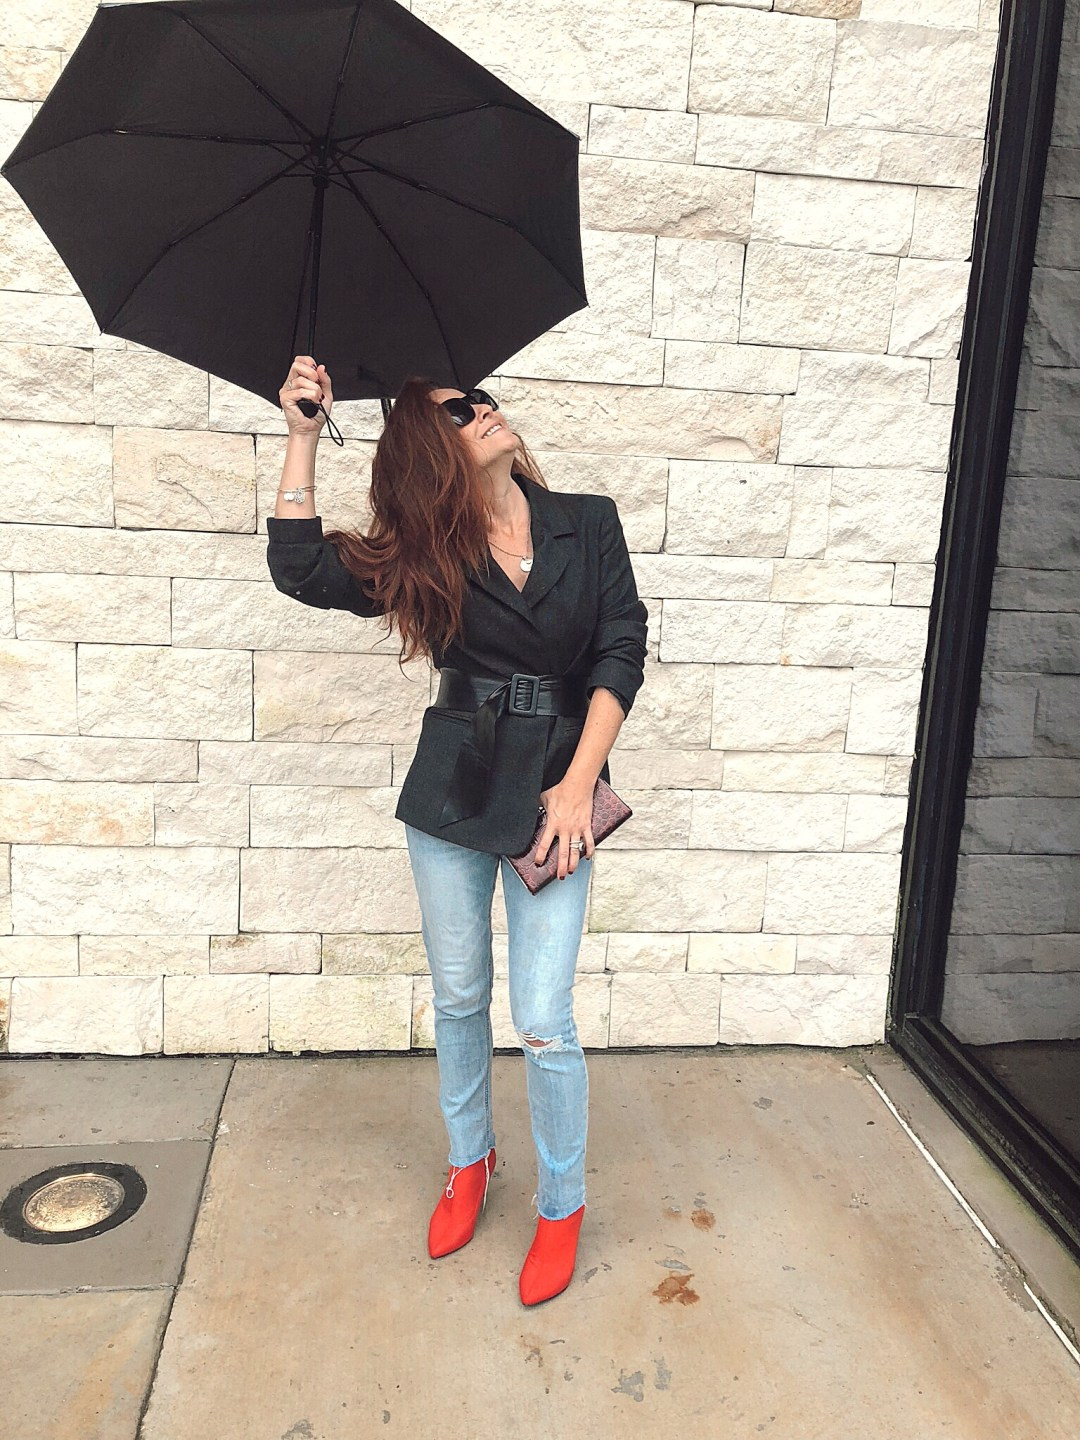 belted outerwear ideas, how to take photos when it's raining, red booties, blazer with jeans